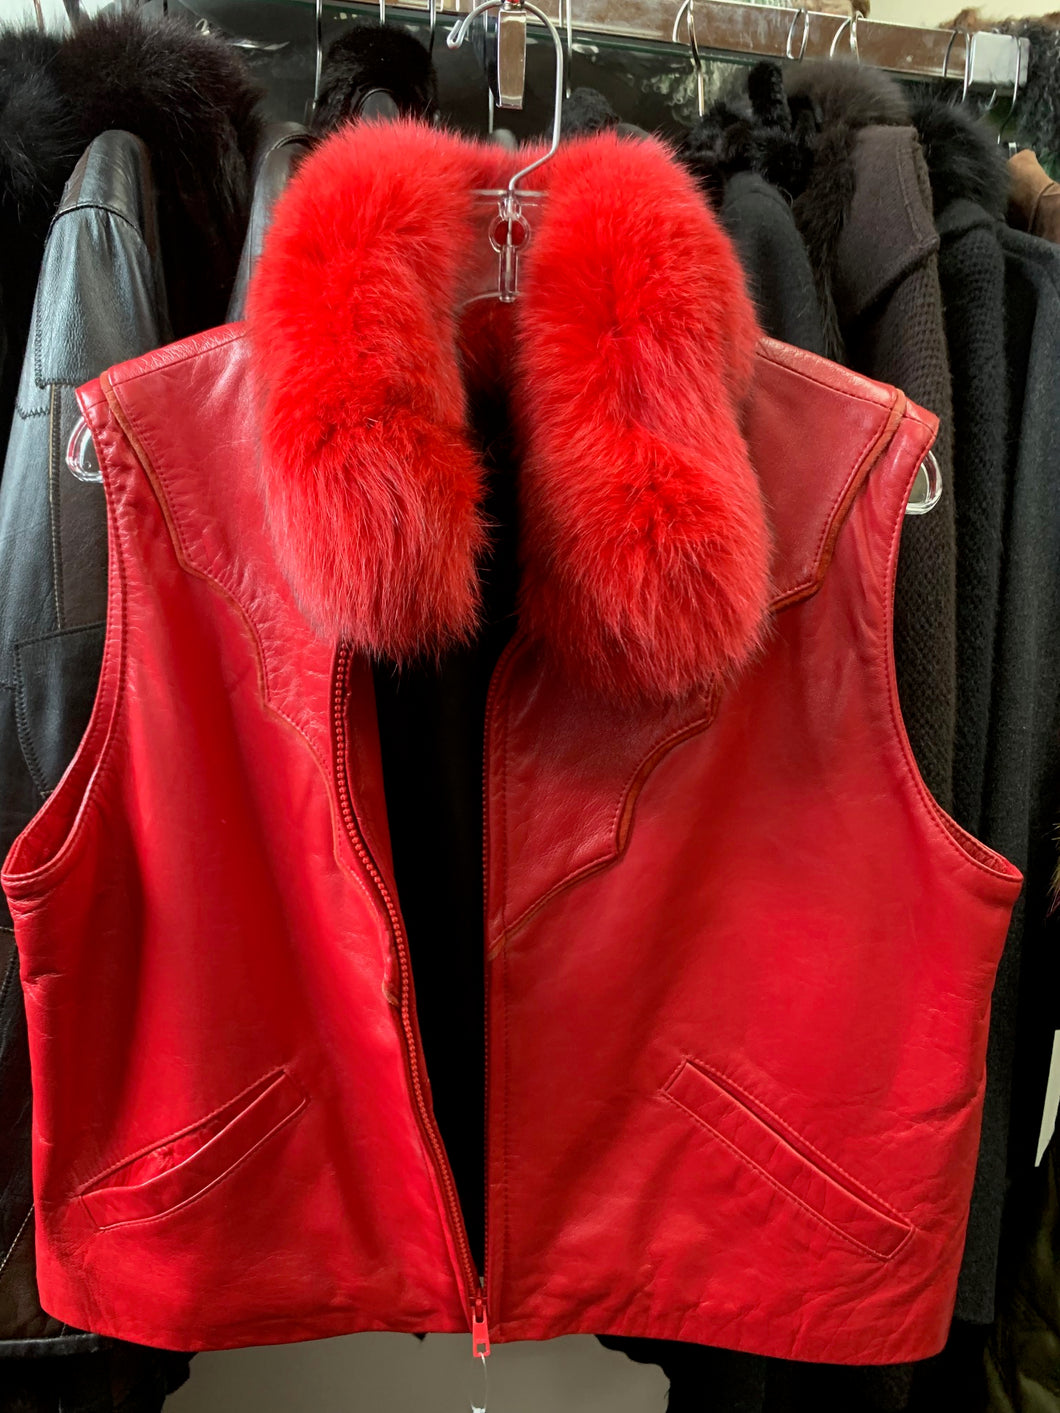 Red Leather Vest with Fur Collar